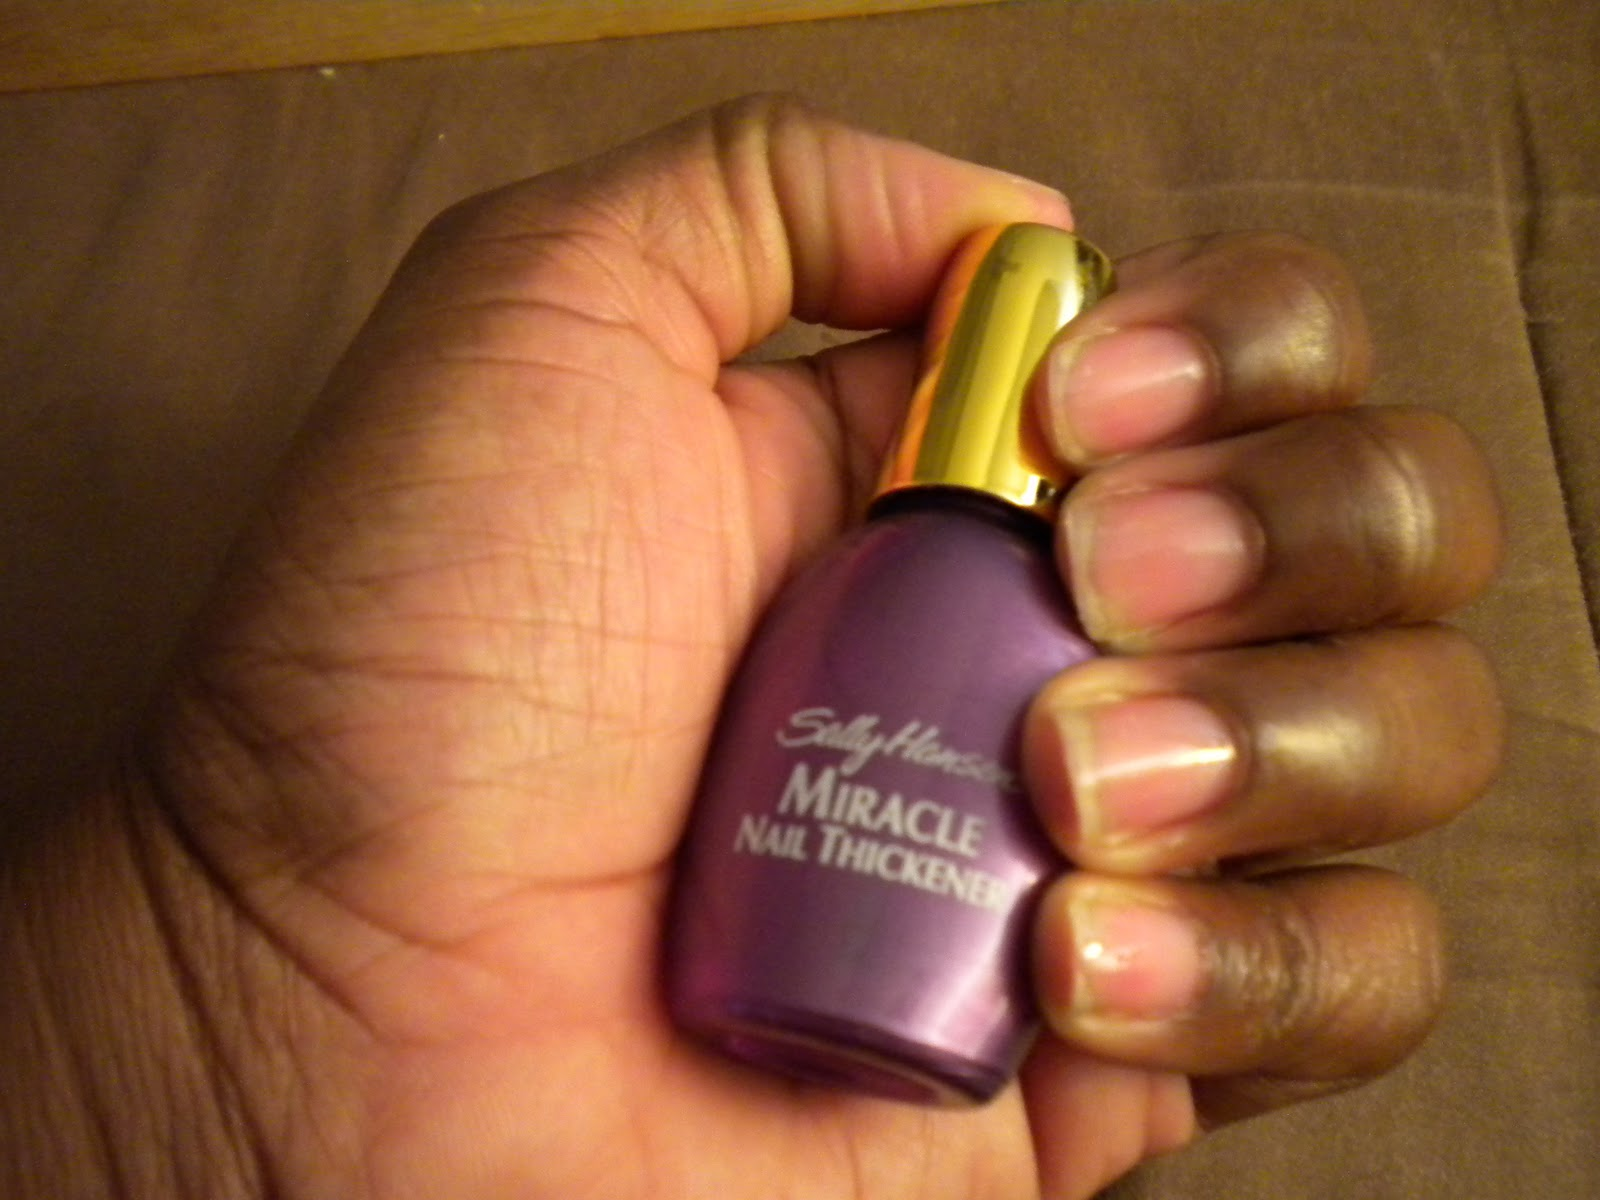 Au Naturale: Back to My Natural Nails - The Trendy Socialite